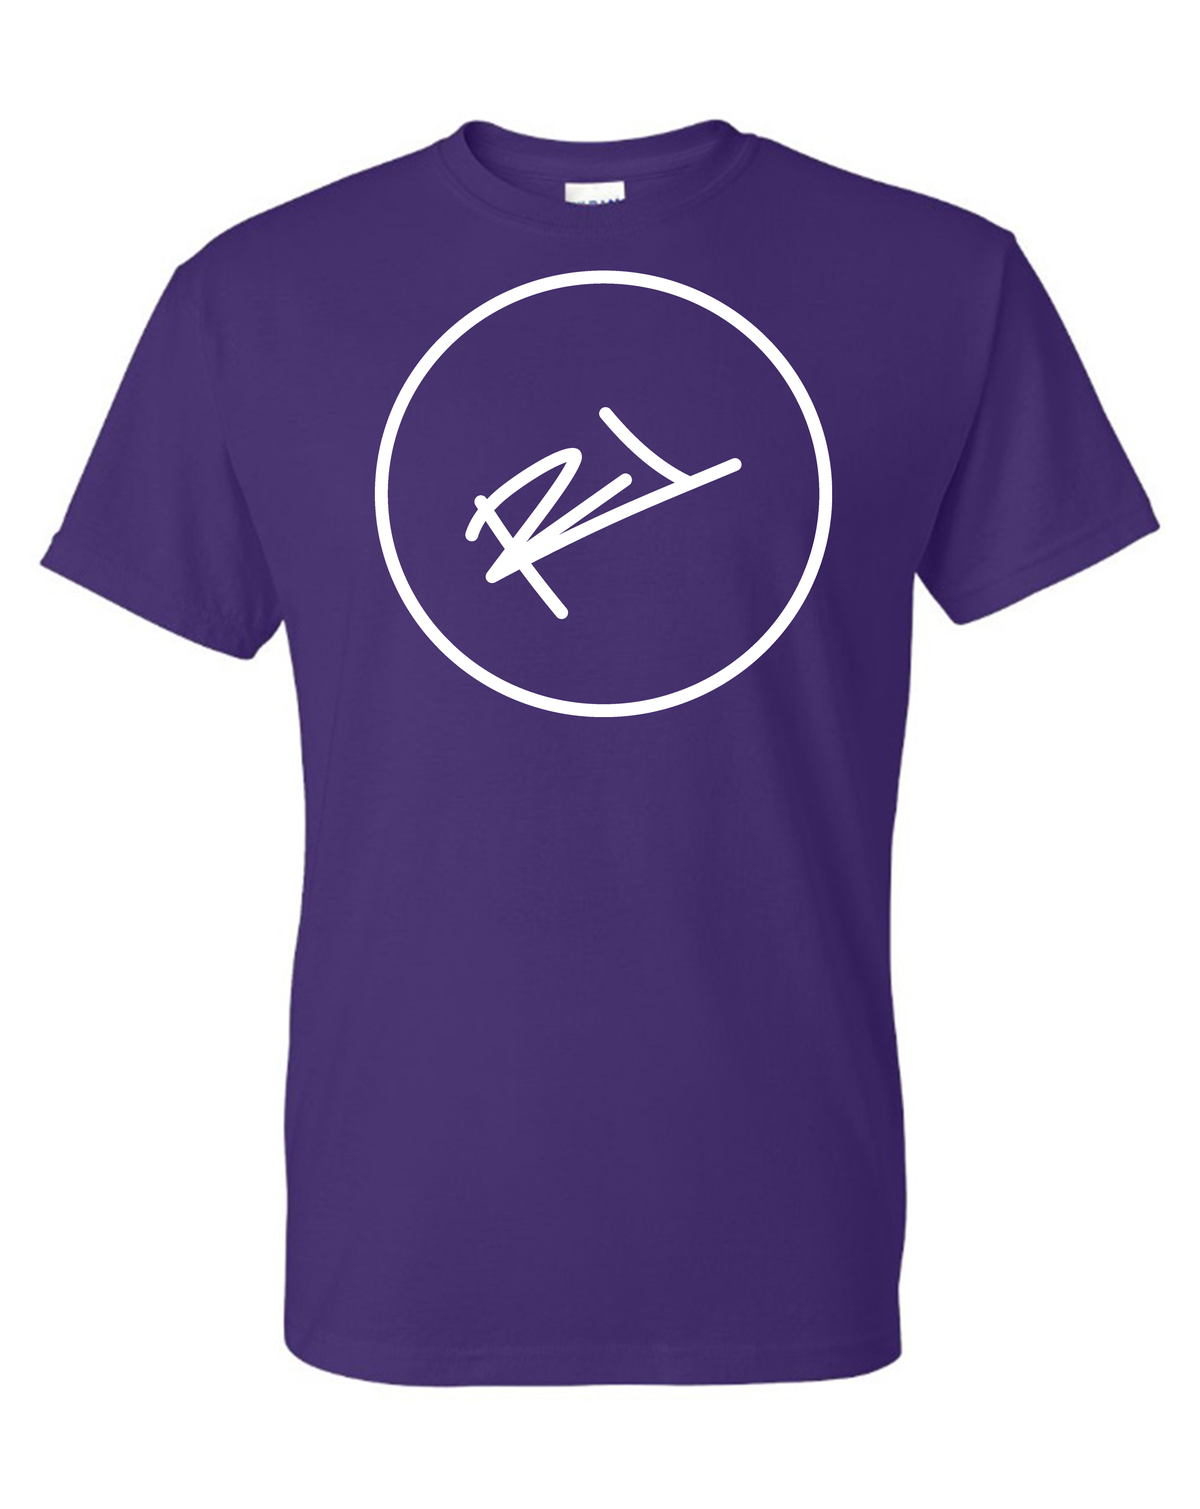 Image of THE ReL BRAND LOGO TEE IN PURPLE